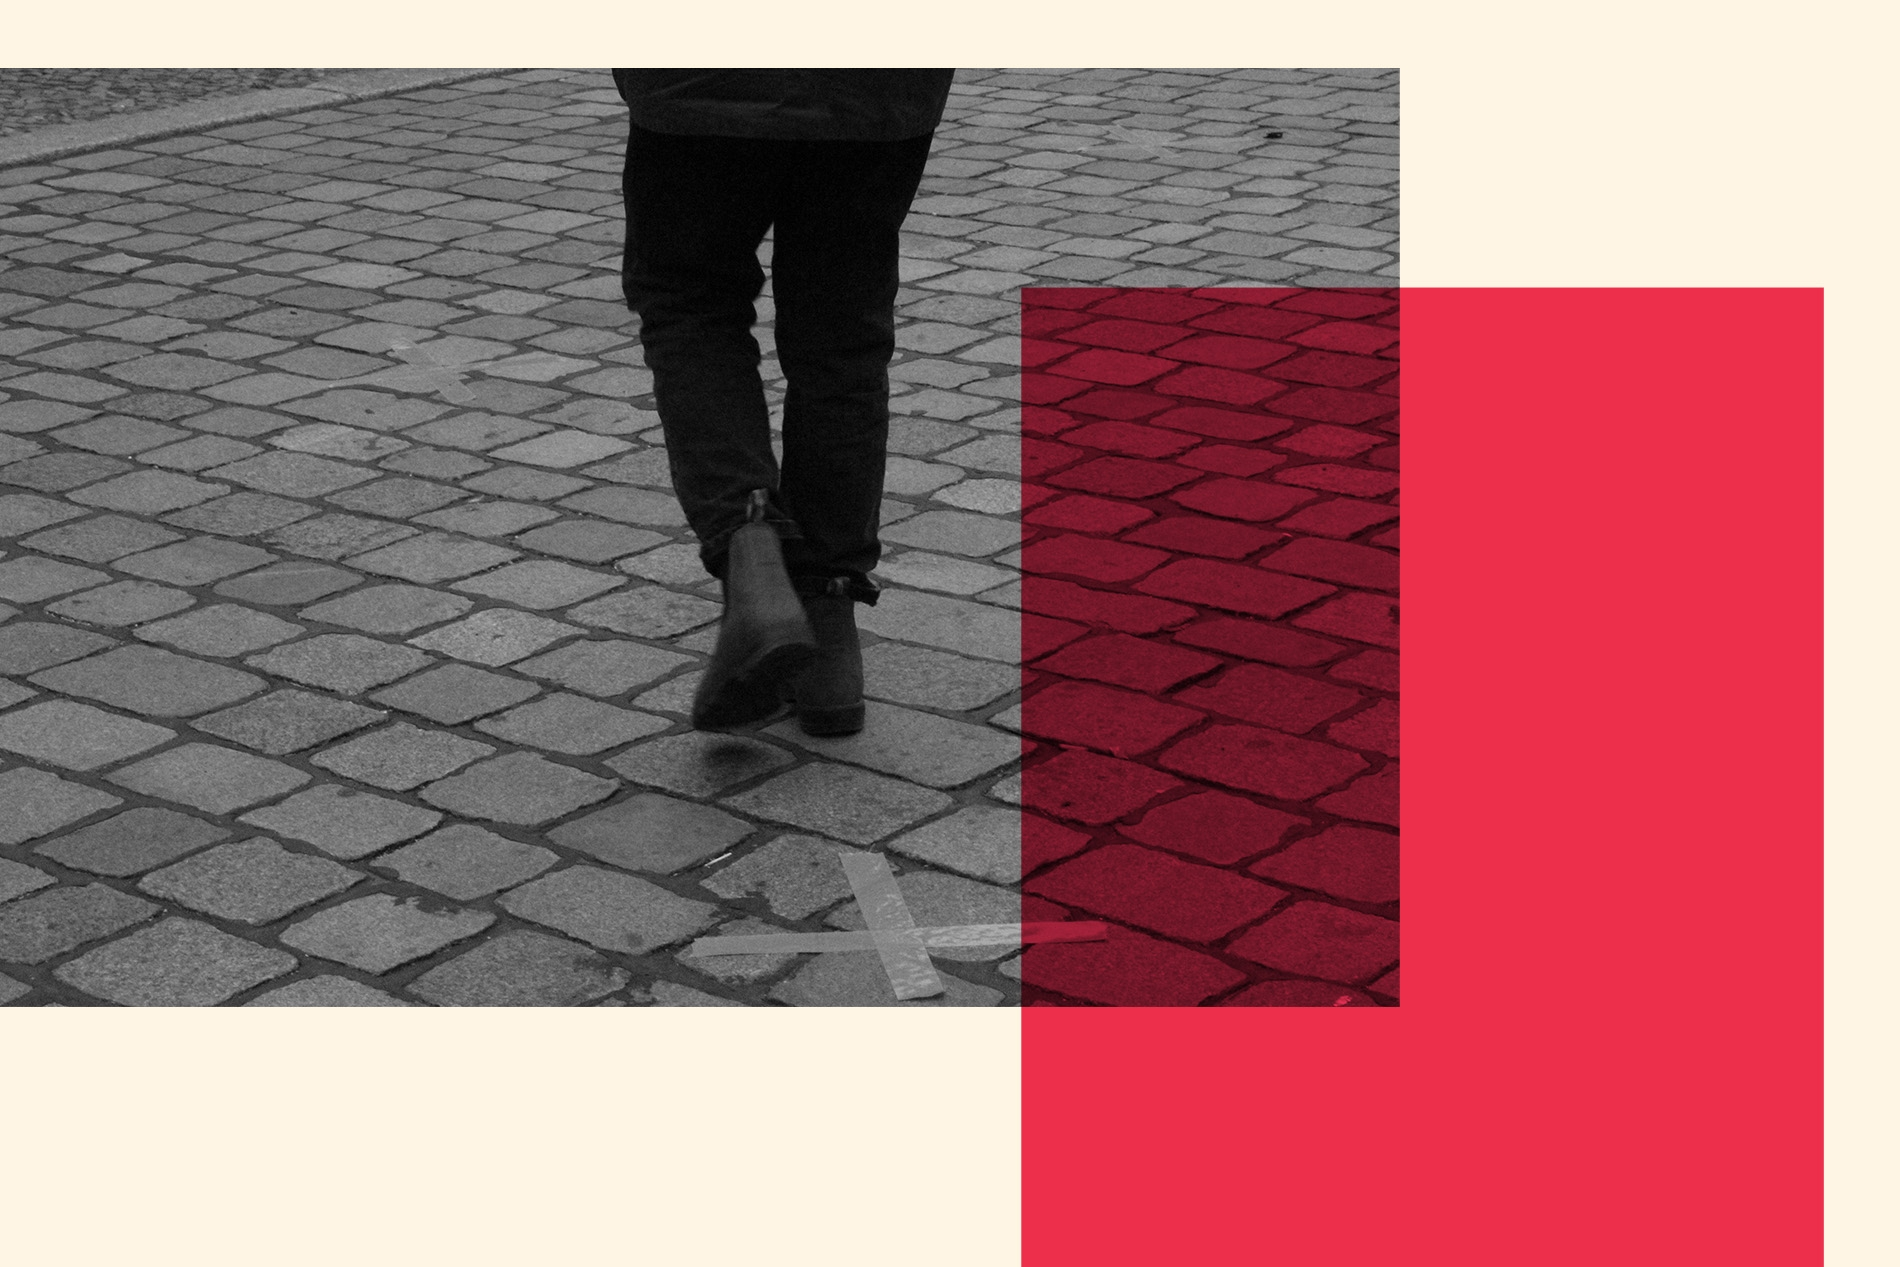 A person walks by a social-distancing marker on a street